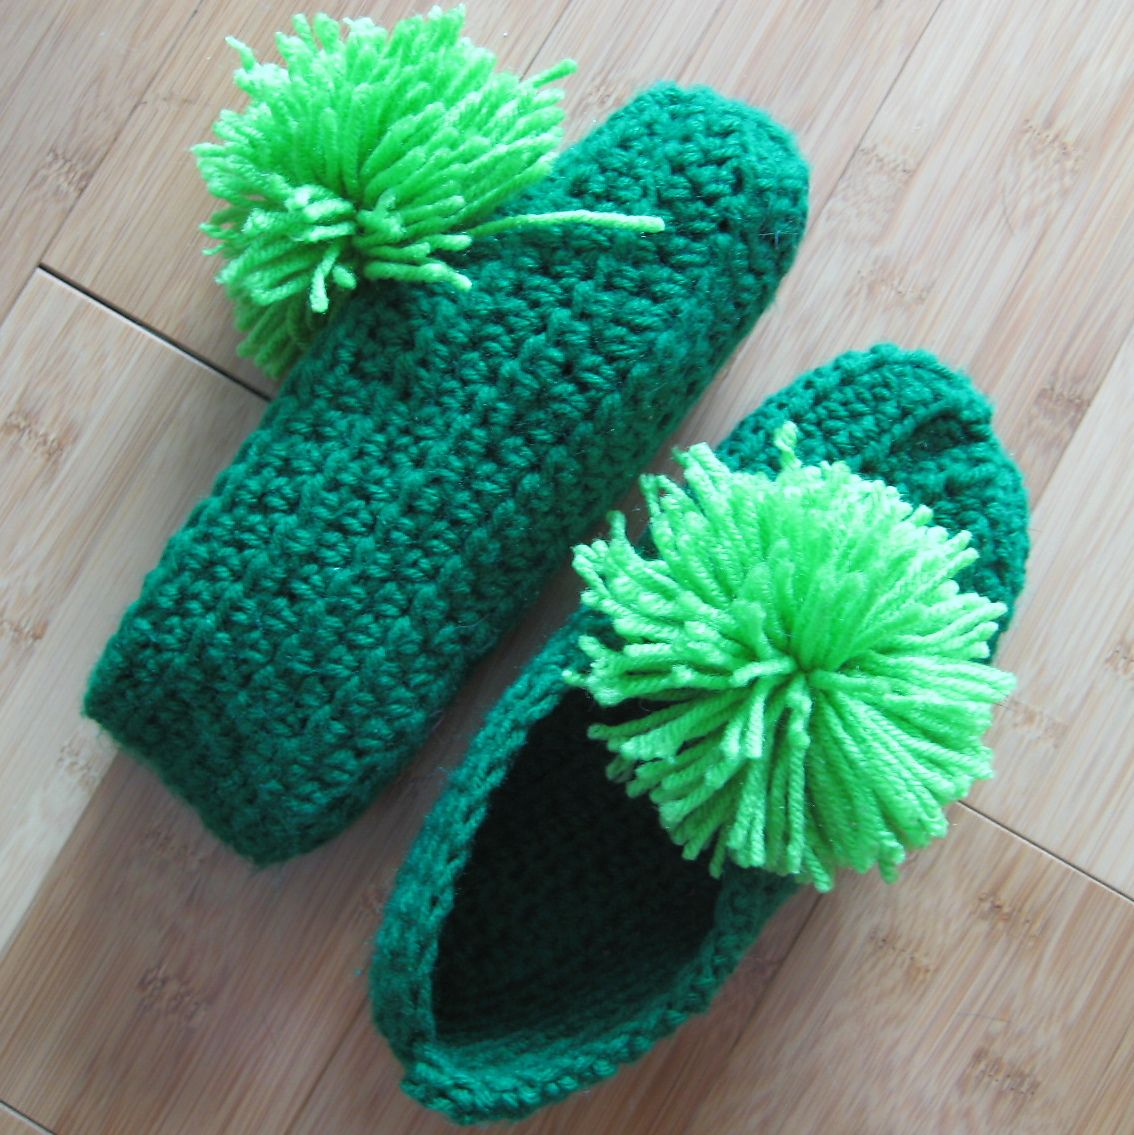 Nana slippers by sarah wales free crochet pattern ravelry nana slippers by sarah wales free crochet pattern ravelry bankloansurffo Image collections